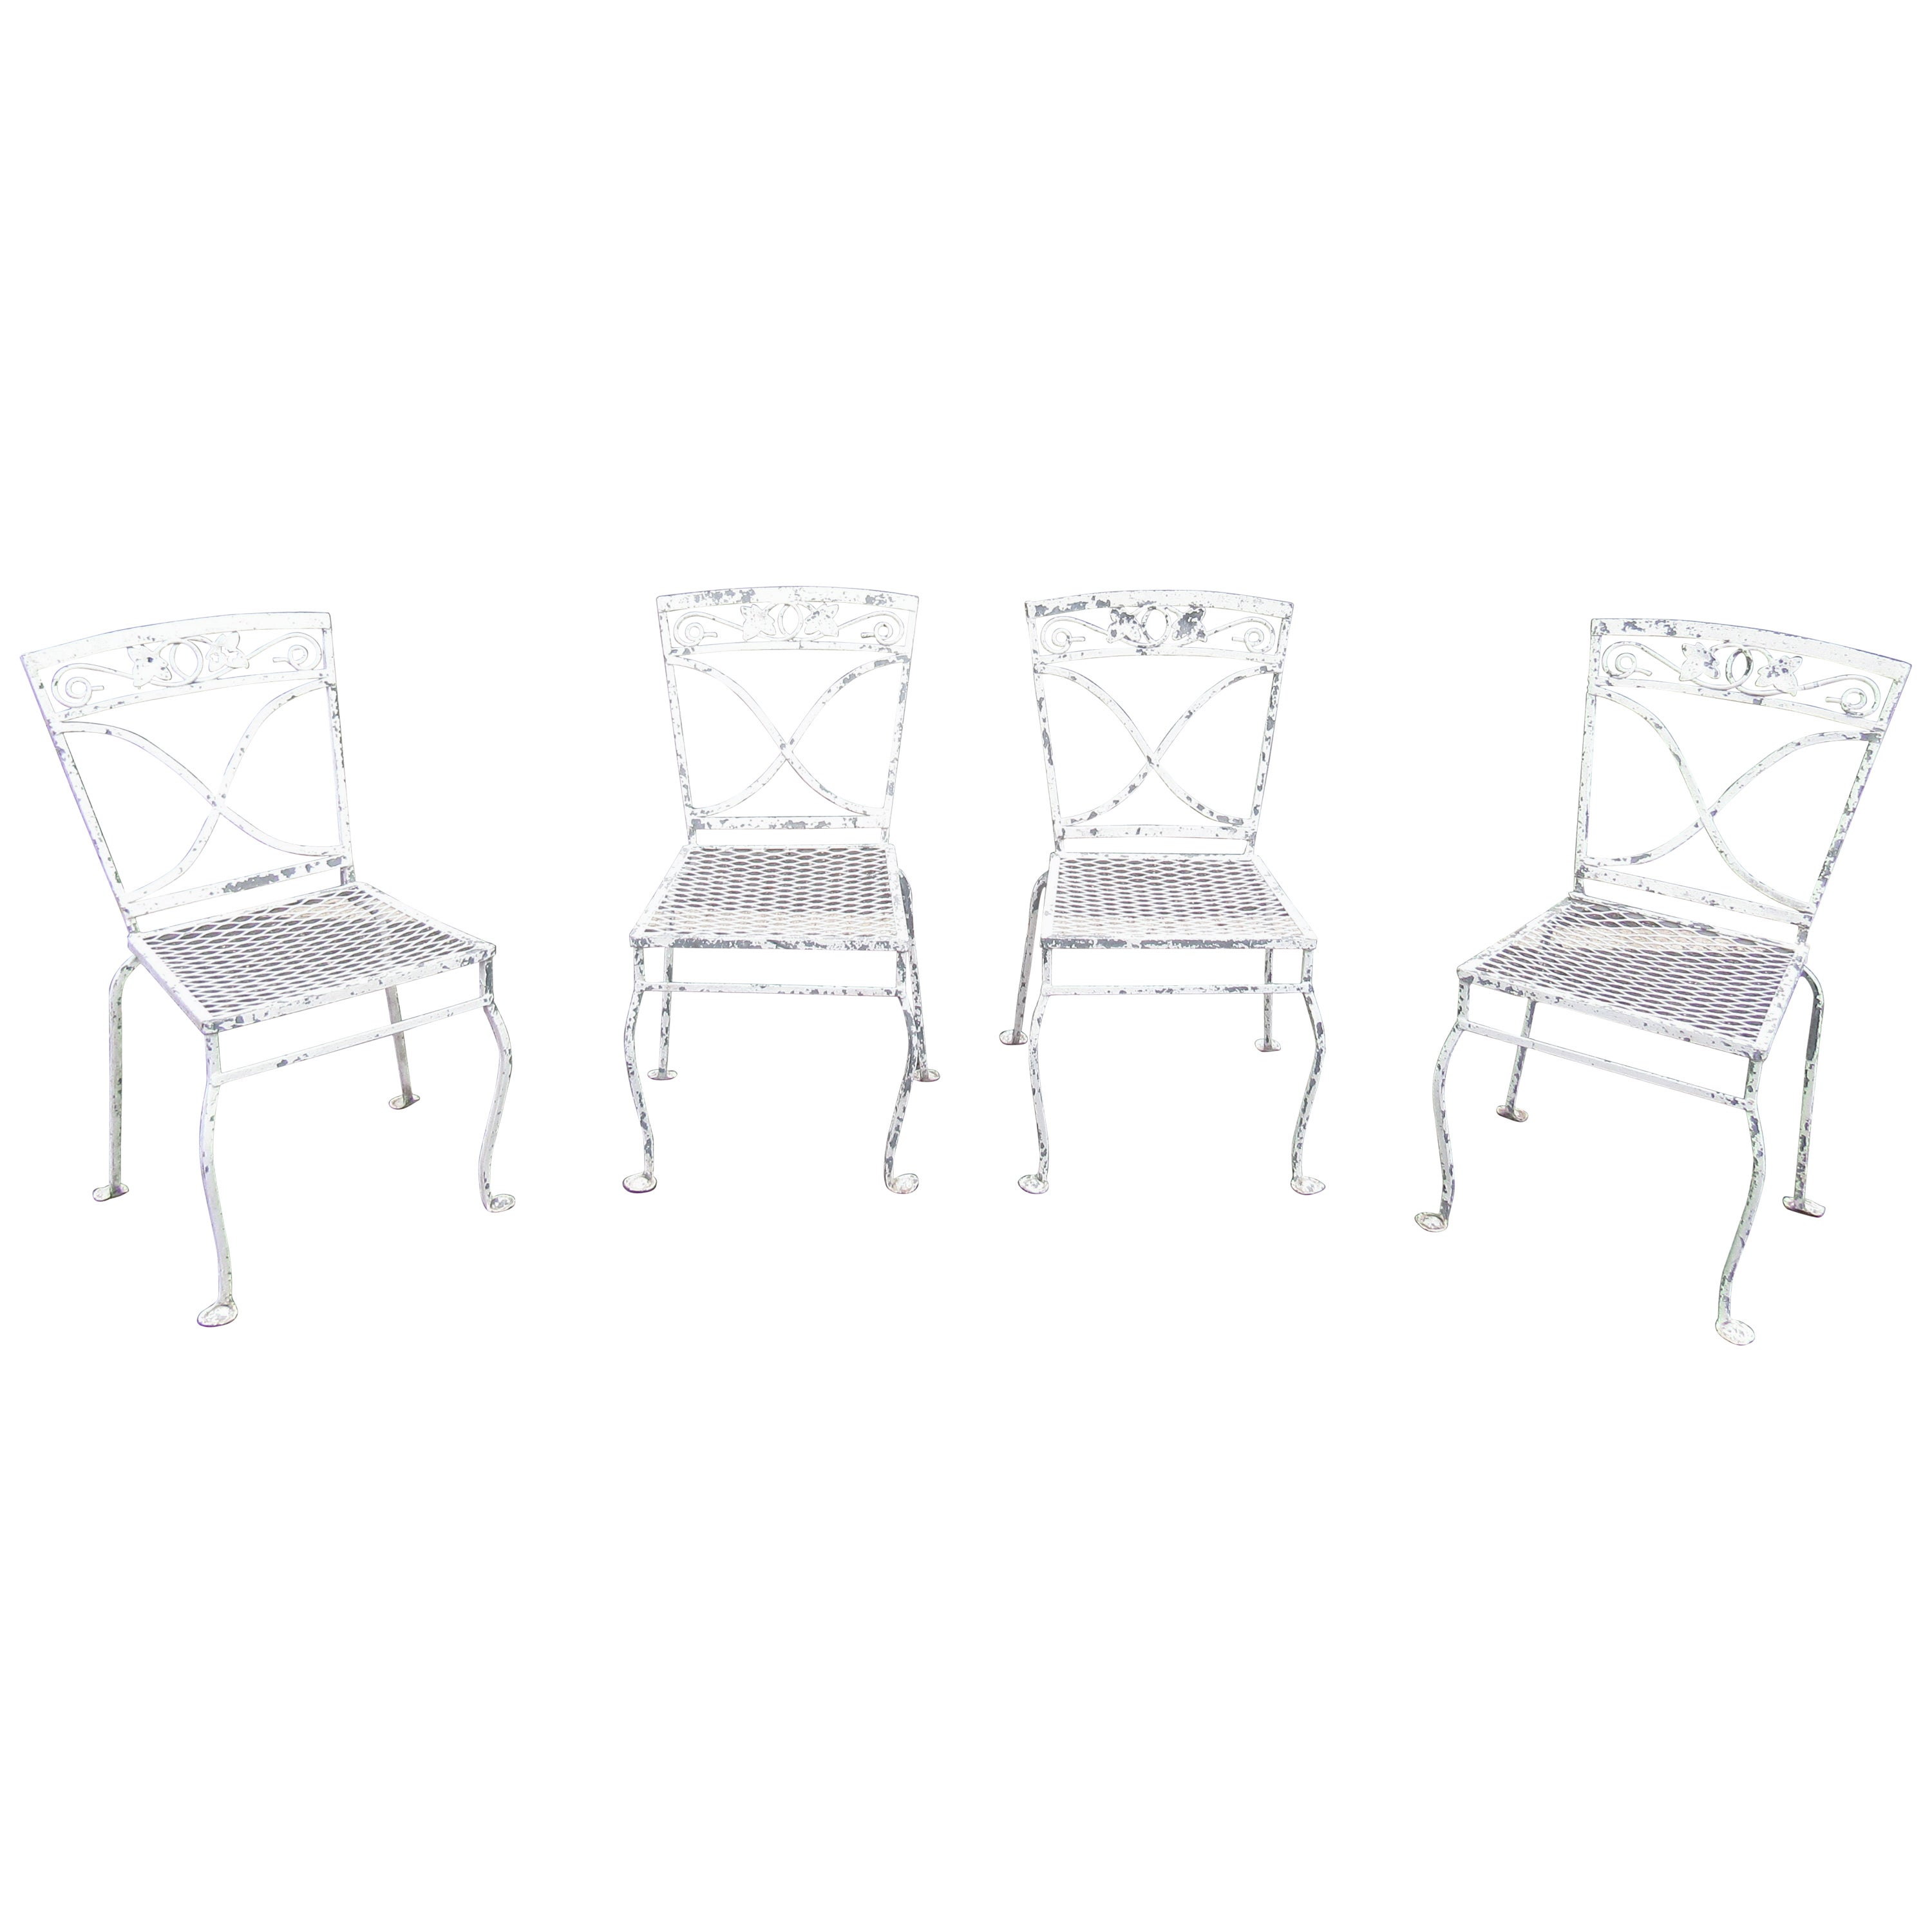 Vintage Iron Patio Dining Chairs, Set of 4